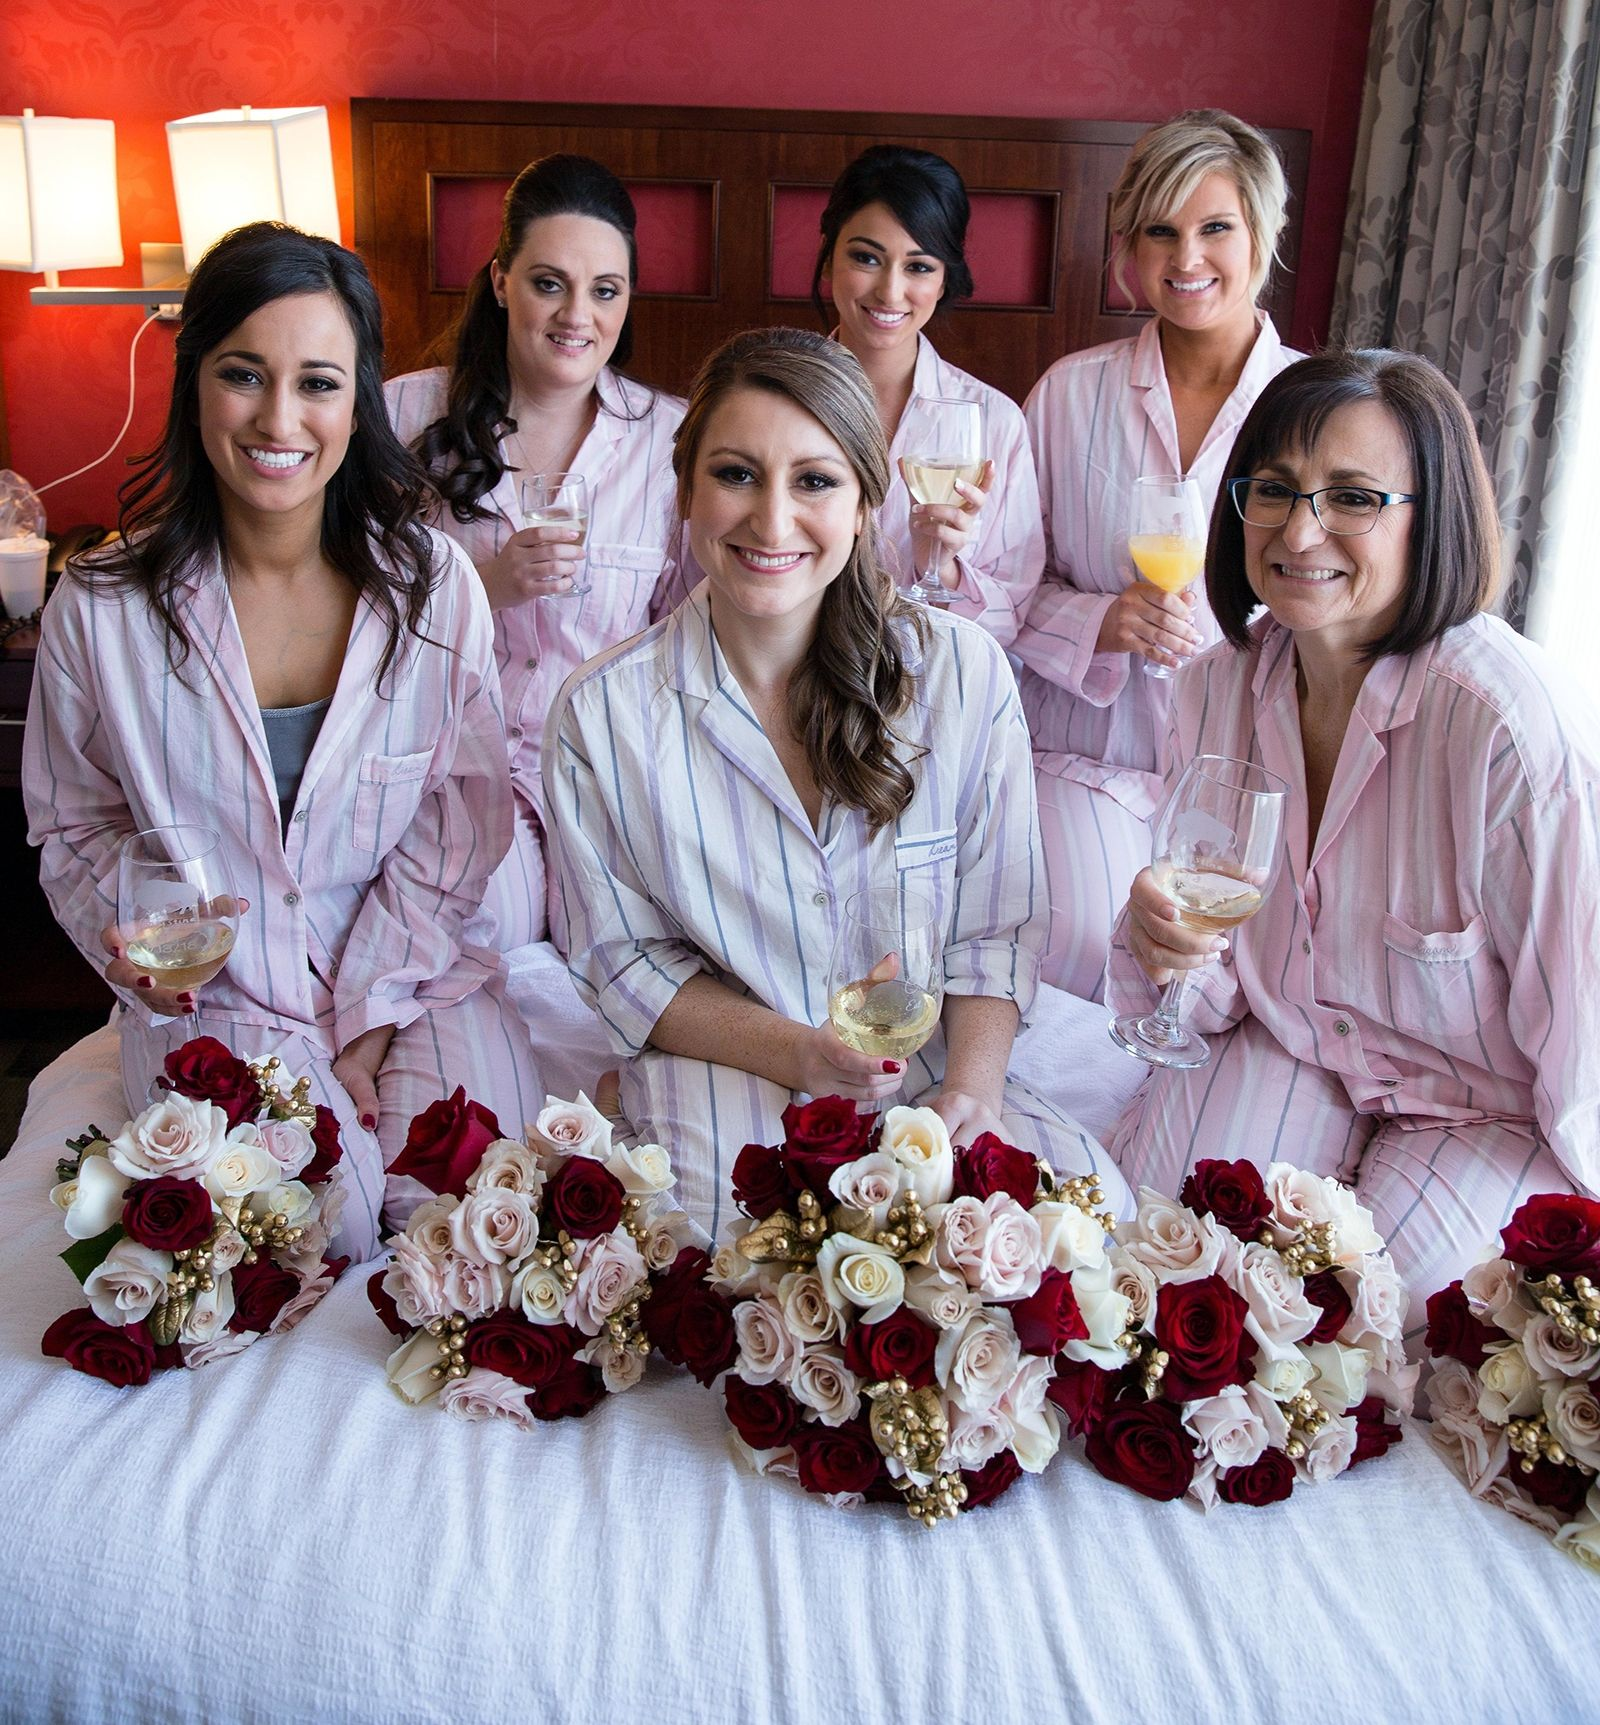 Hair for Christina's bridal party was done by Dante Pimpo of Ciao Bella Hair Studio, with makeup by Allina LaMorticella of Makeup by Allina. From bottom left: Maid of Honor Danielle Fanara; Bride Christina Oakley; Mother of the Bride Fran Warner; Bridesmaids Jamie Miskines, Michelle Fanara and Kim Kraft.